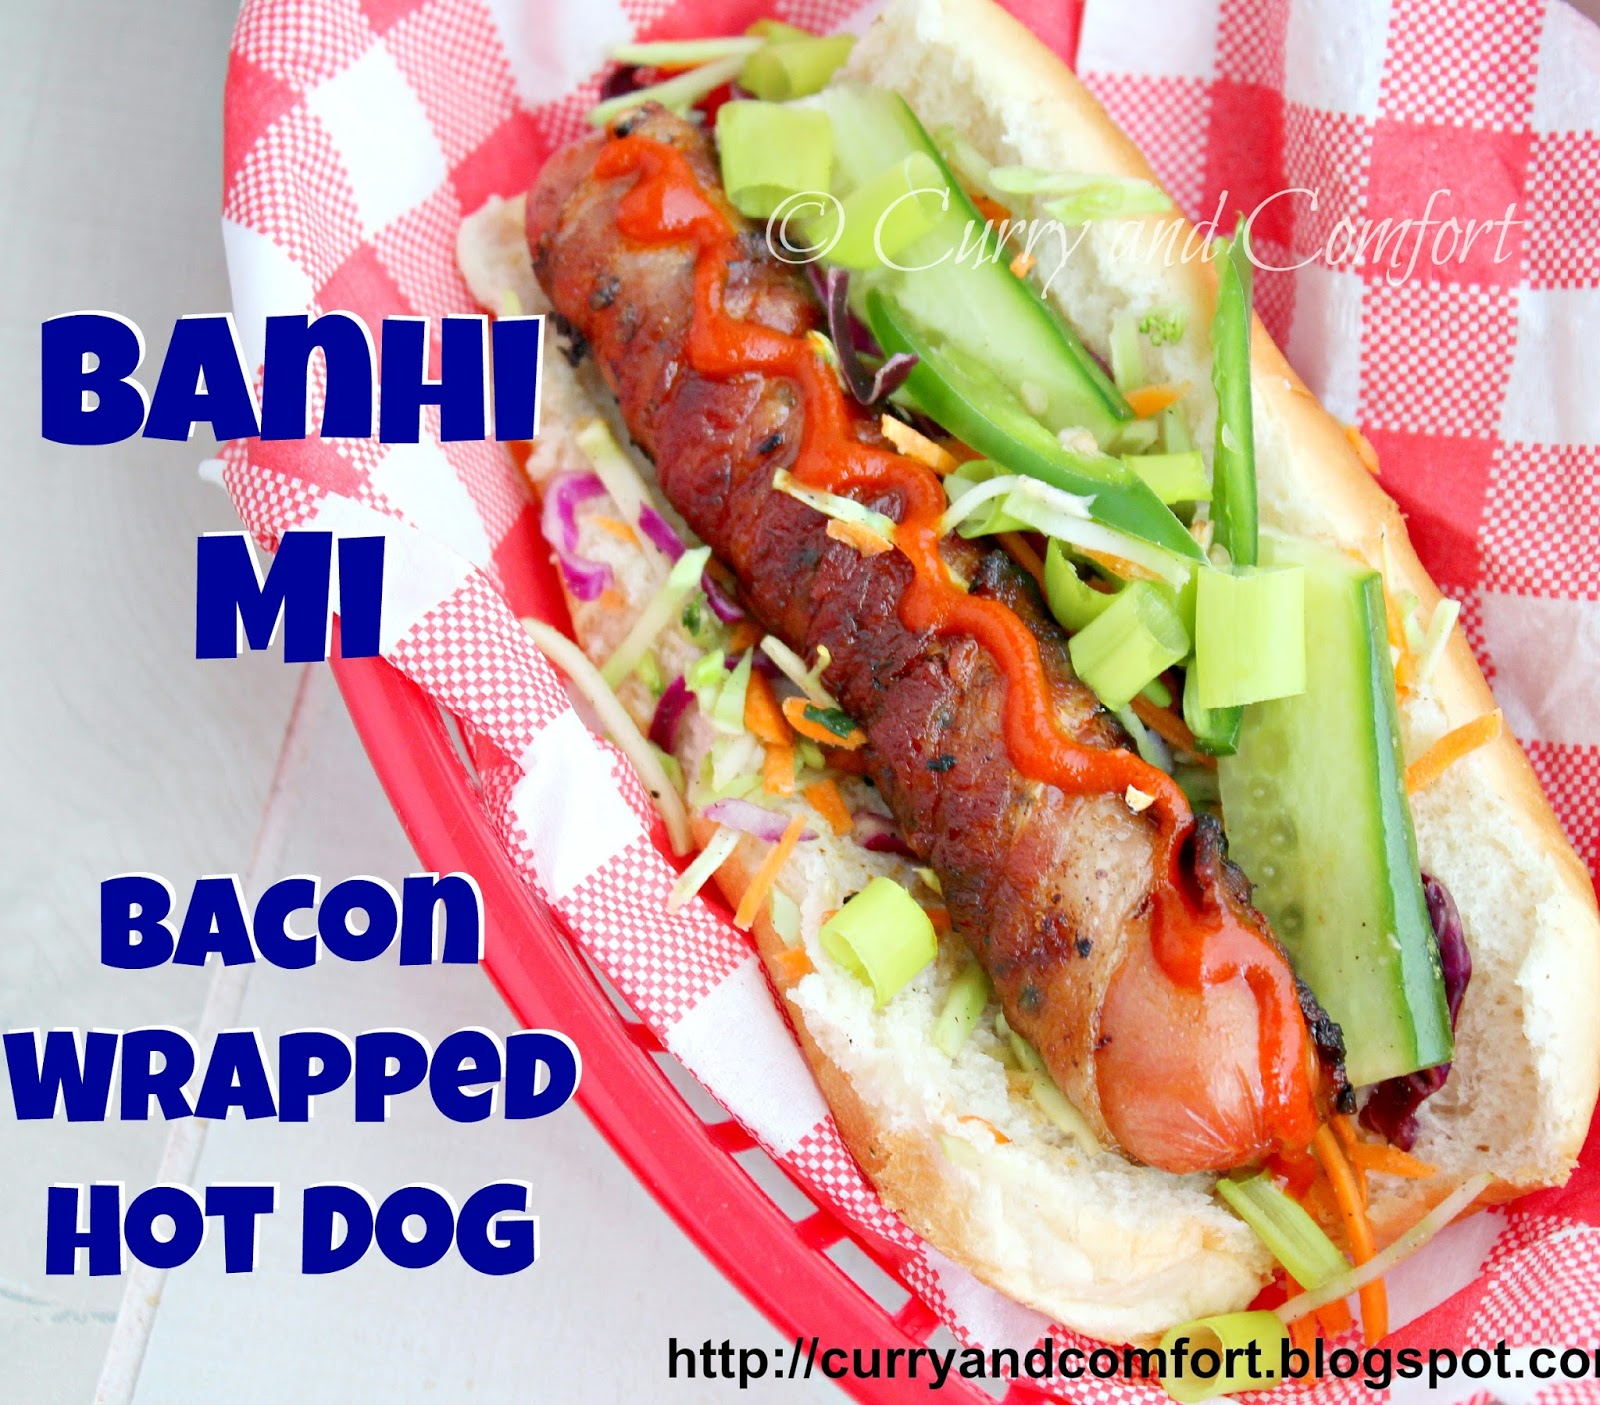 ... hot dog buns with broccoli banh mi slaw and garnishes. Serve hot